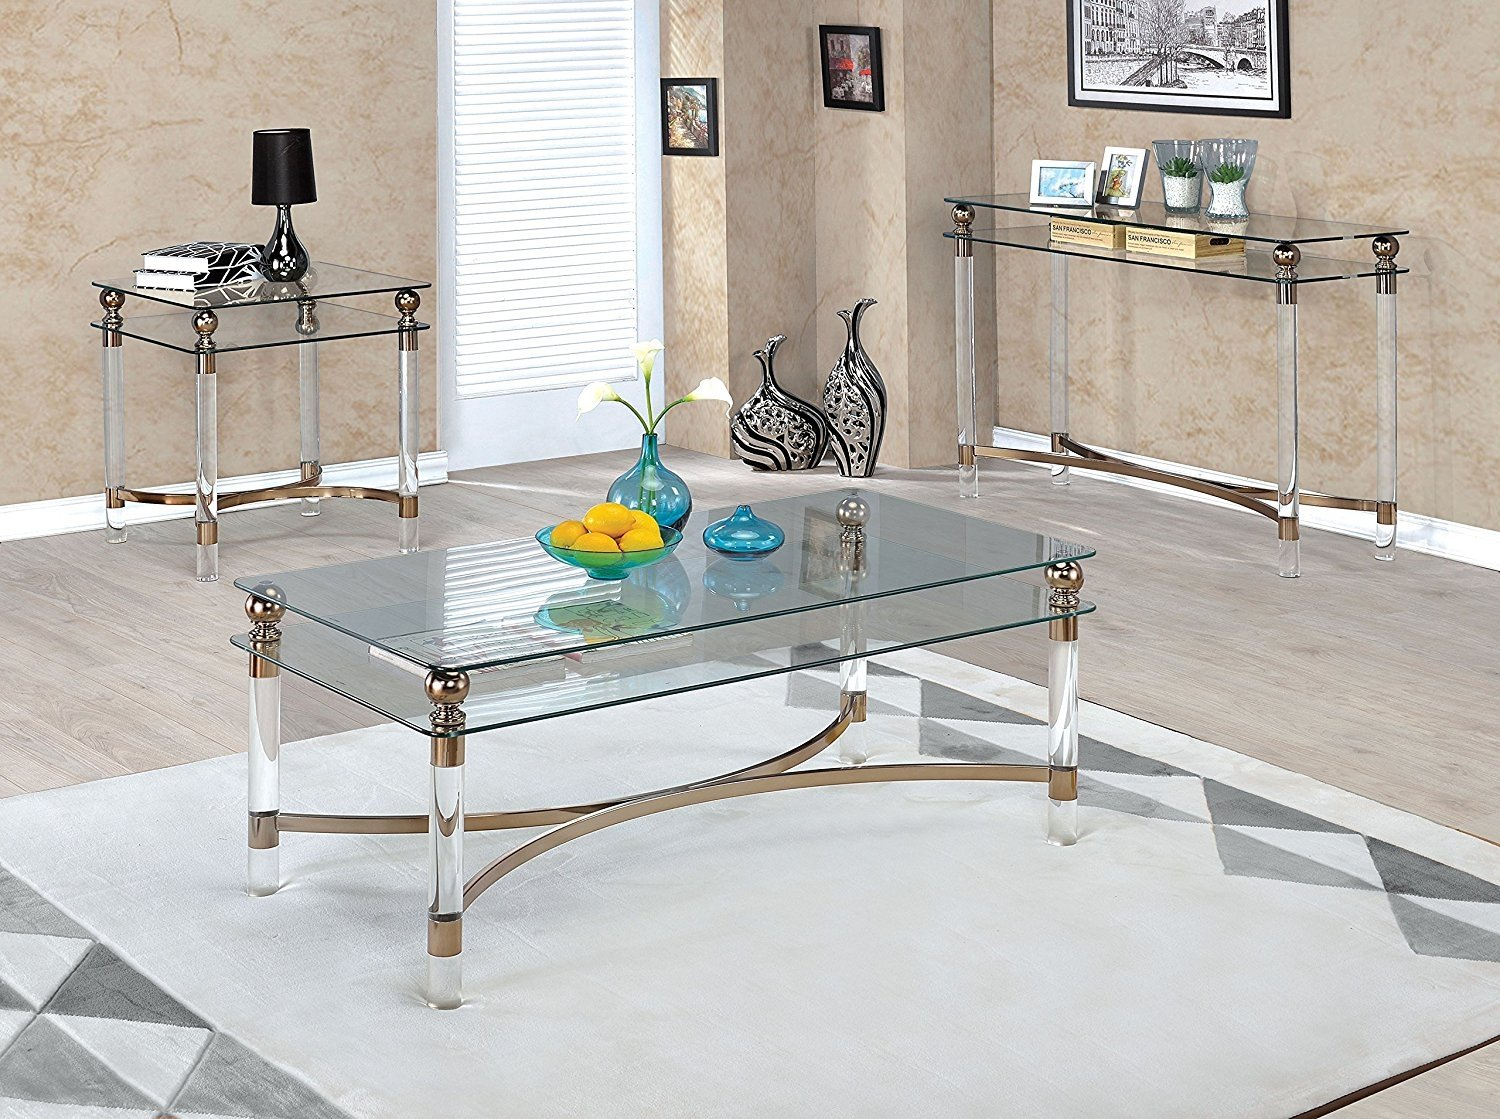 stella sofa table versace bed homes inside out idf 4352s normal gold product details chic and elegance define the iohomes